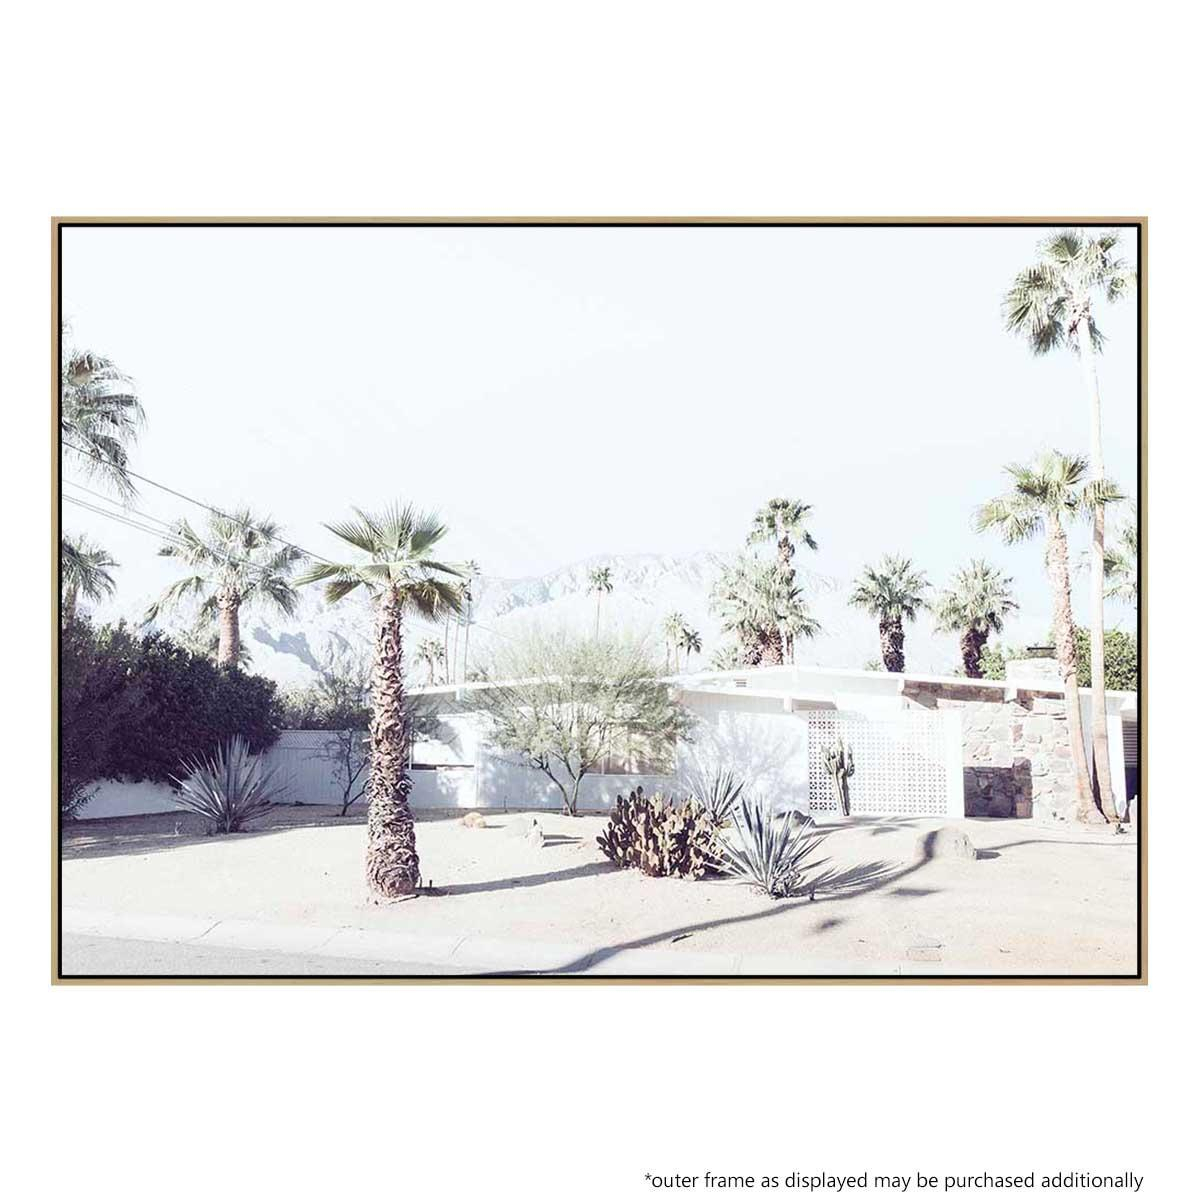 Palm Desert – Print Intended For Most Recent Blended Fabric Palm Tree Wall Hangings (View 12 of 20)